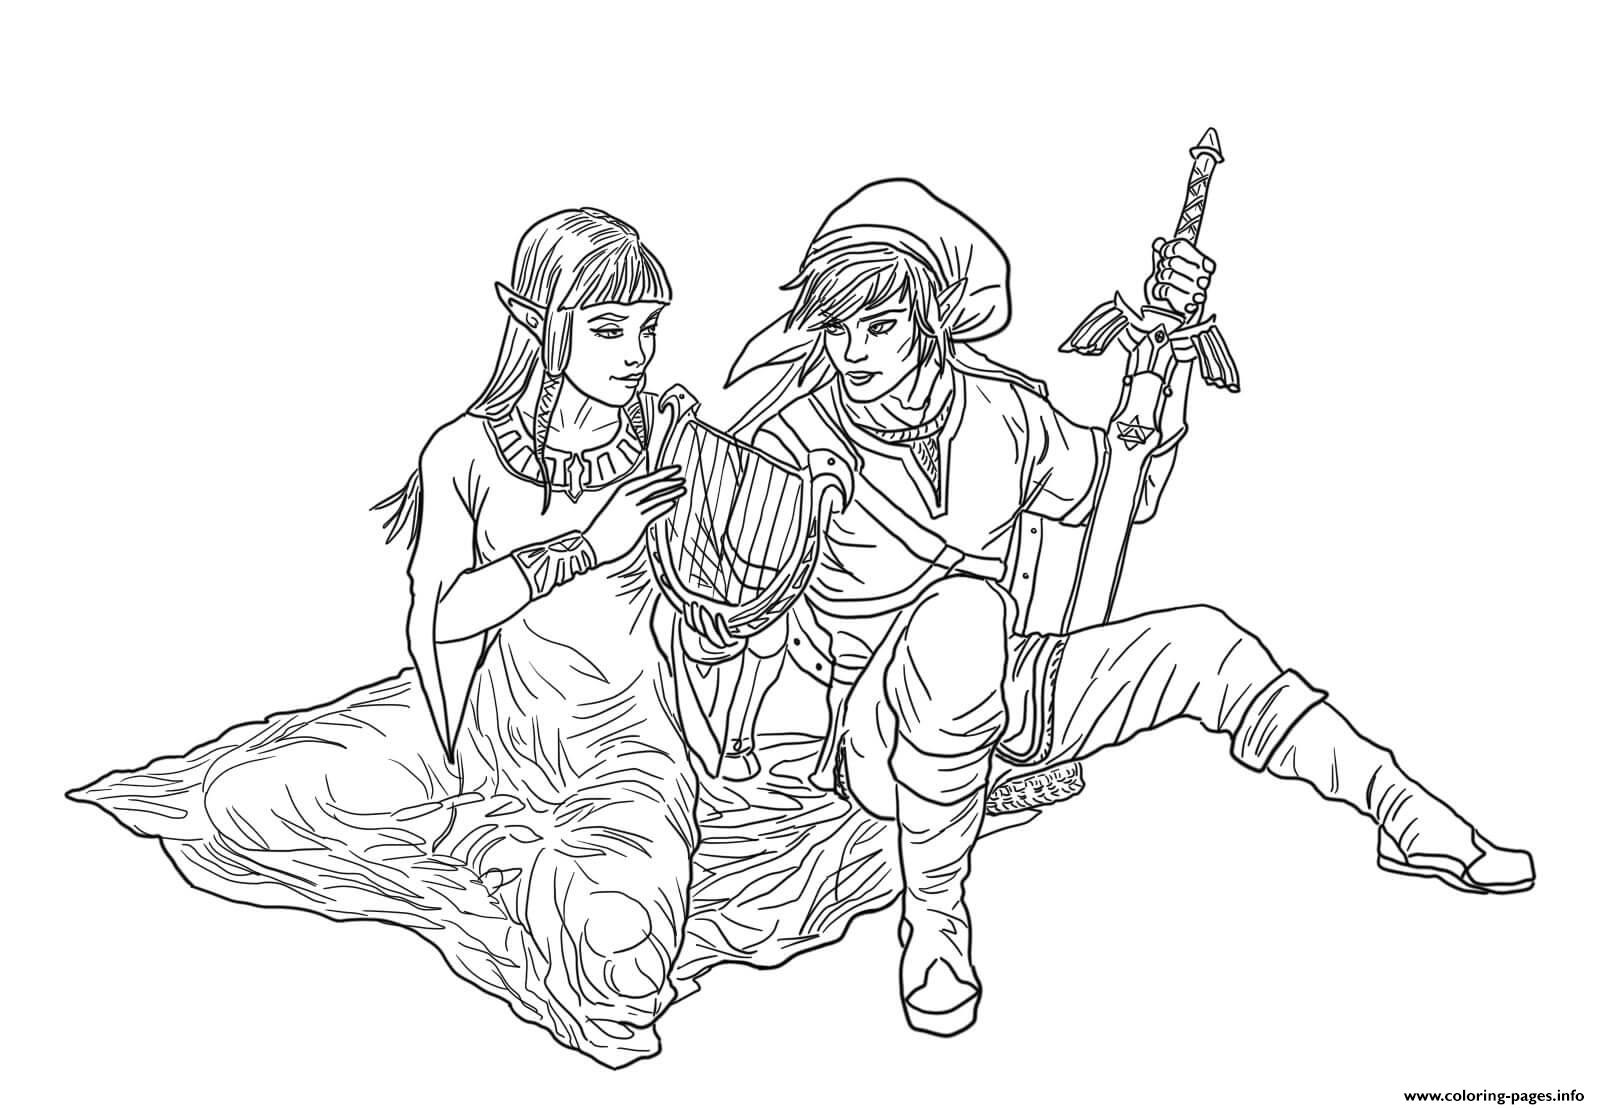 Link and zelda coloring pages printable